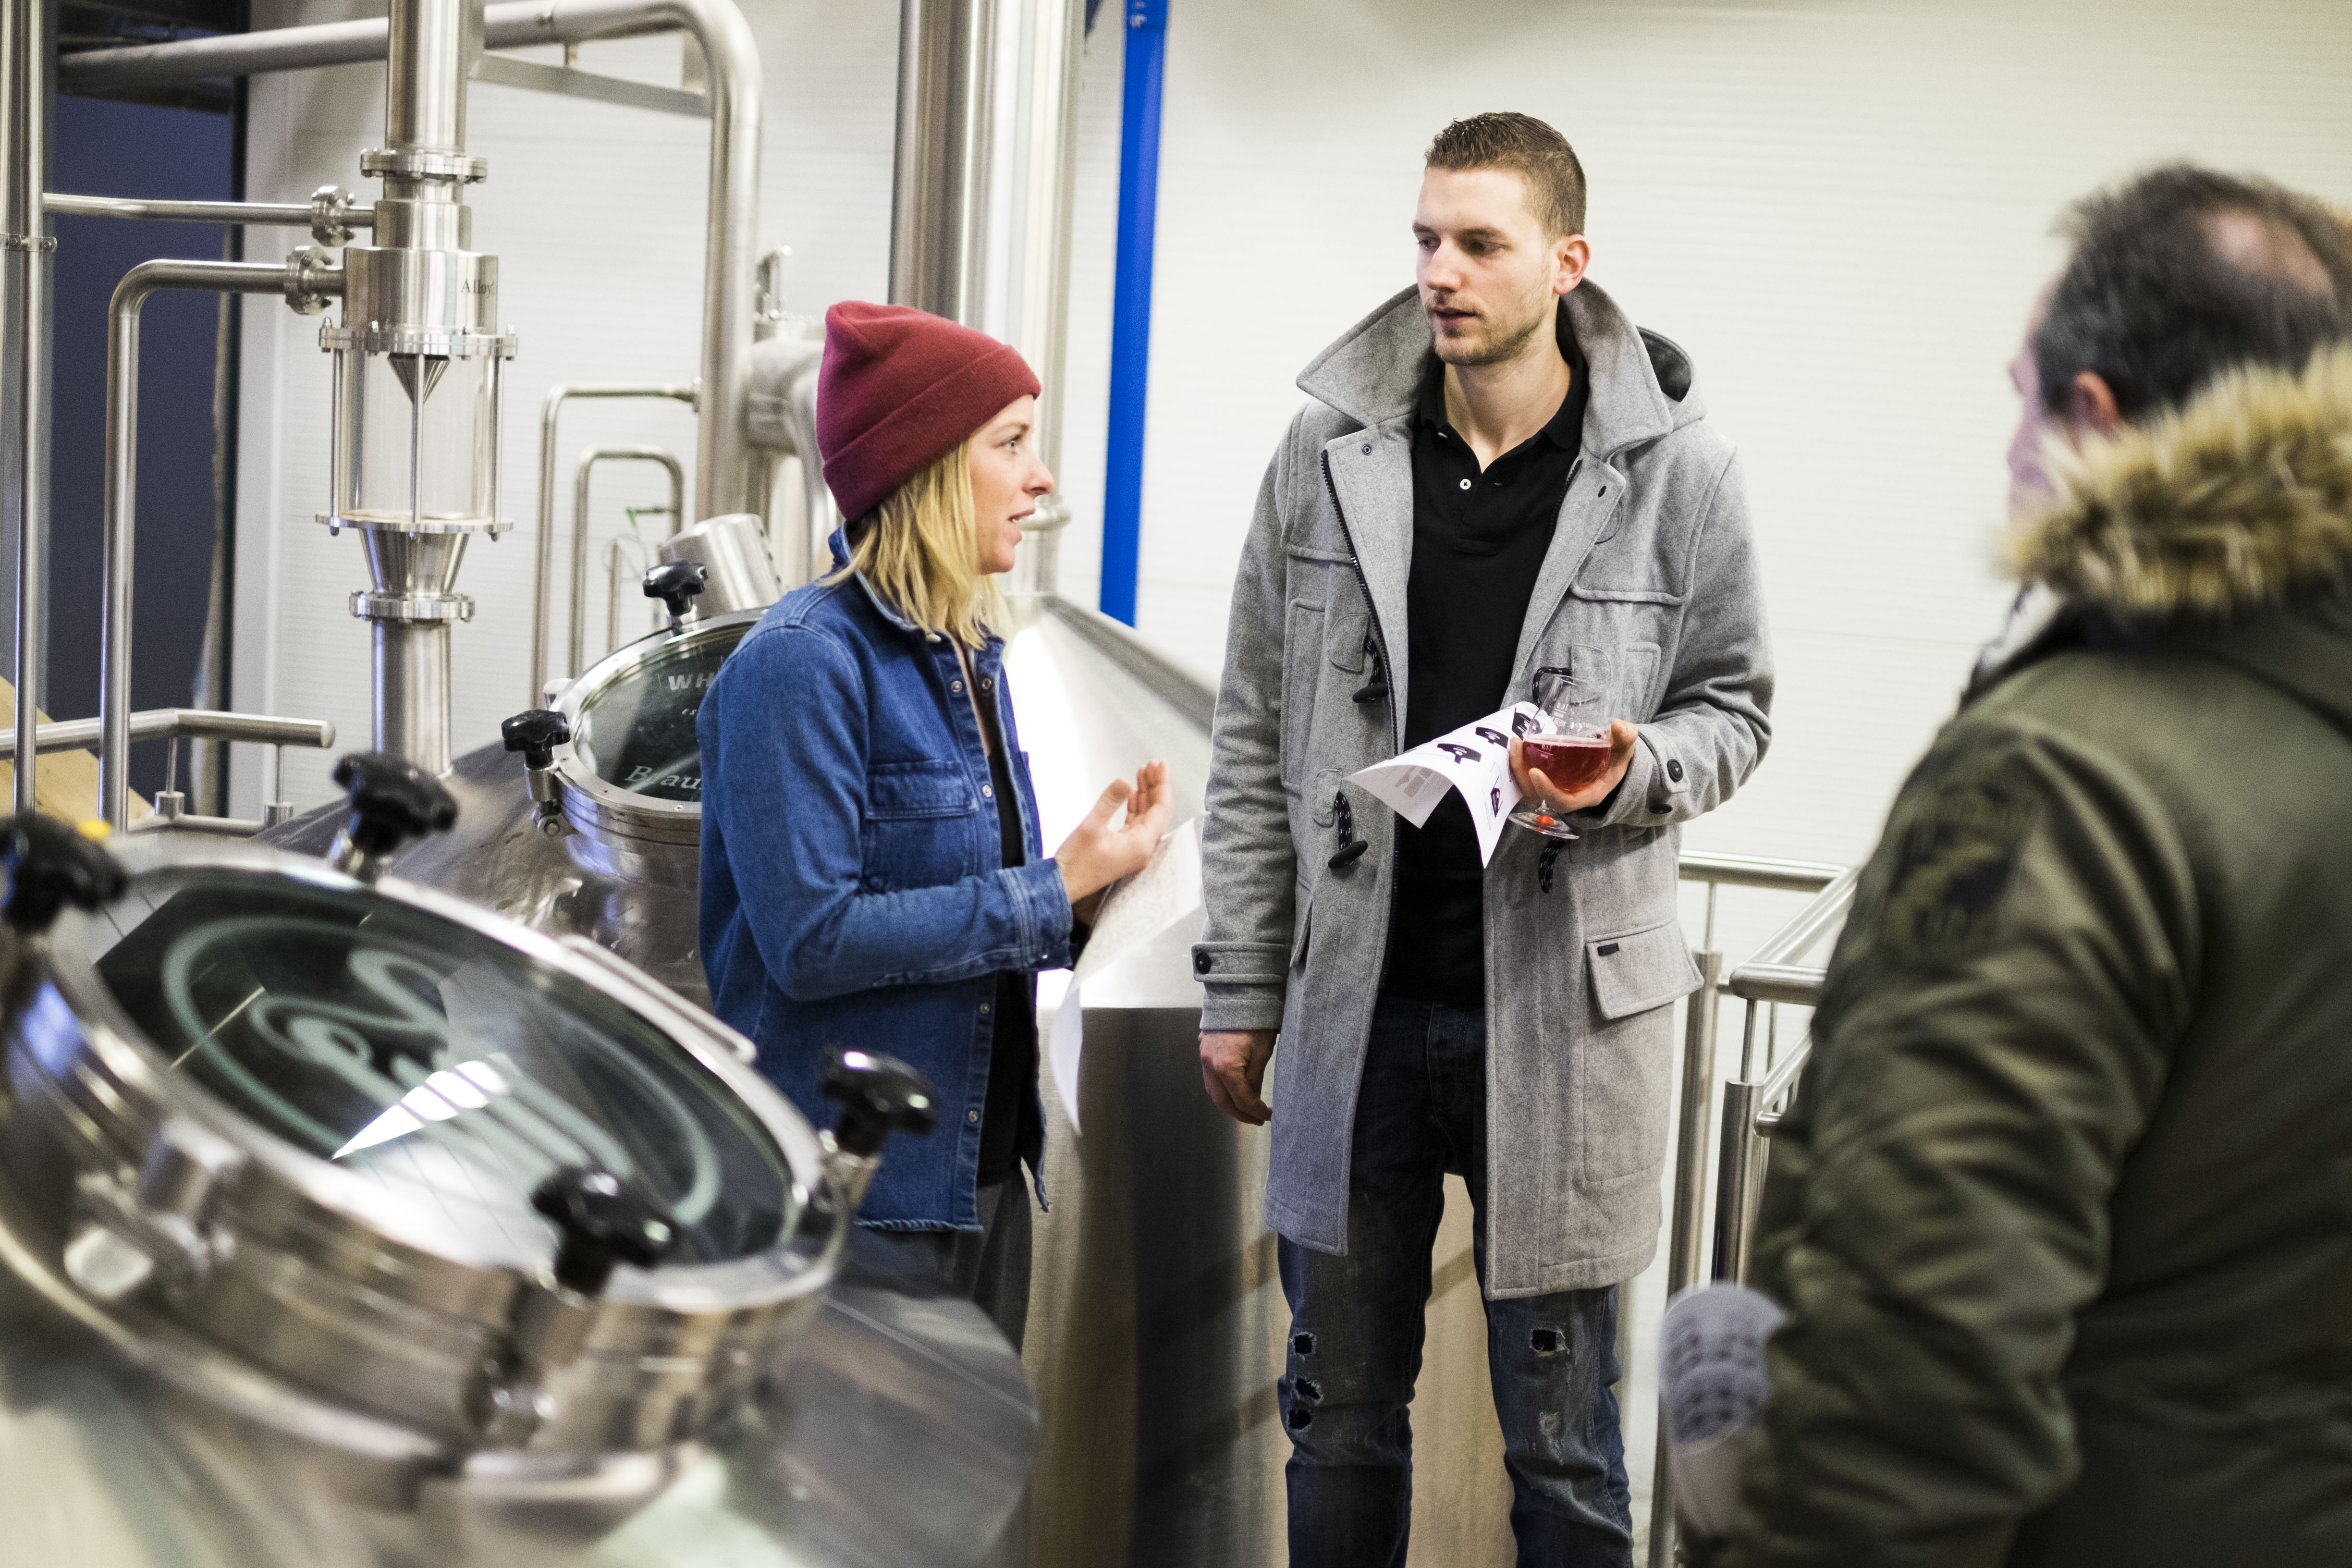 Visites-Brasserie-Taproom-Brewery-tour